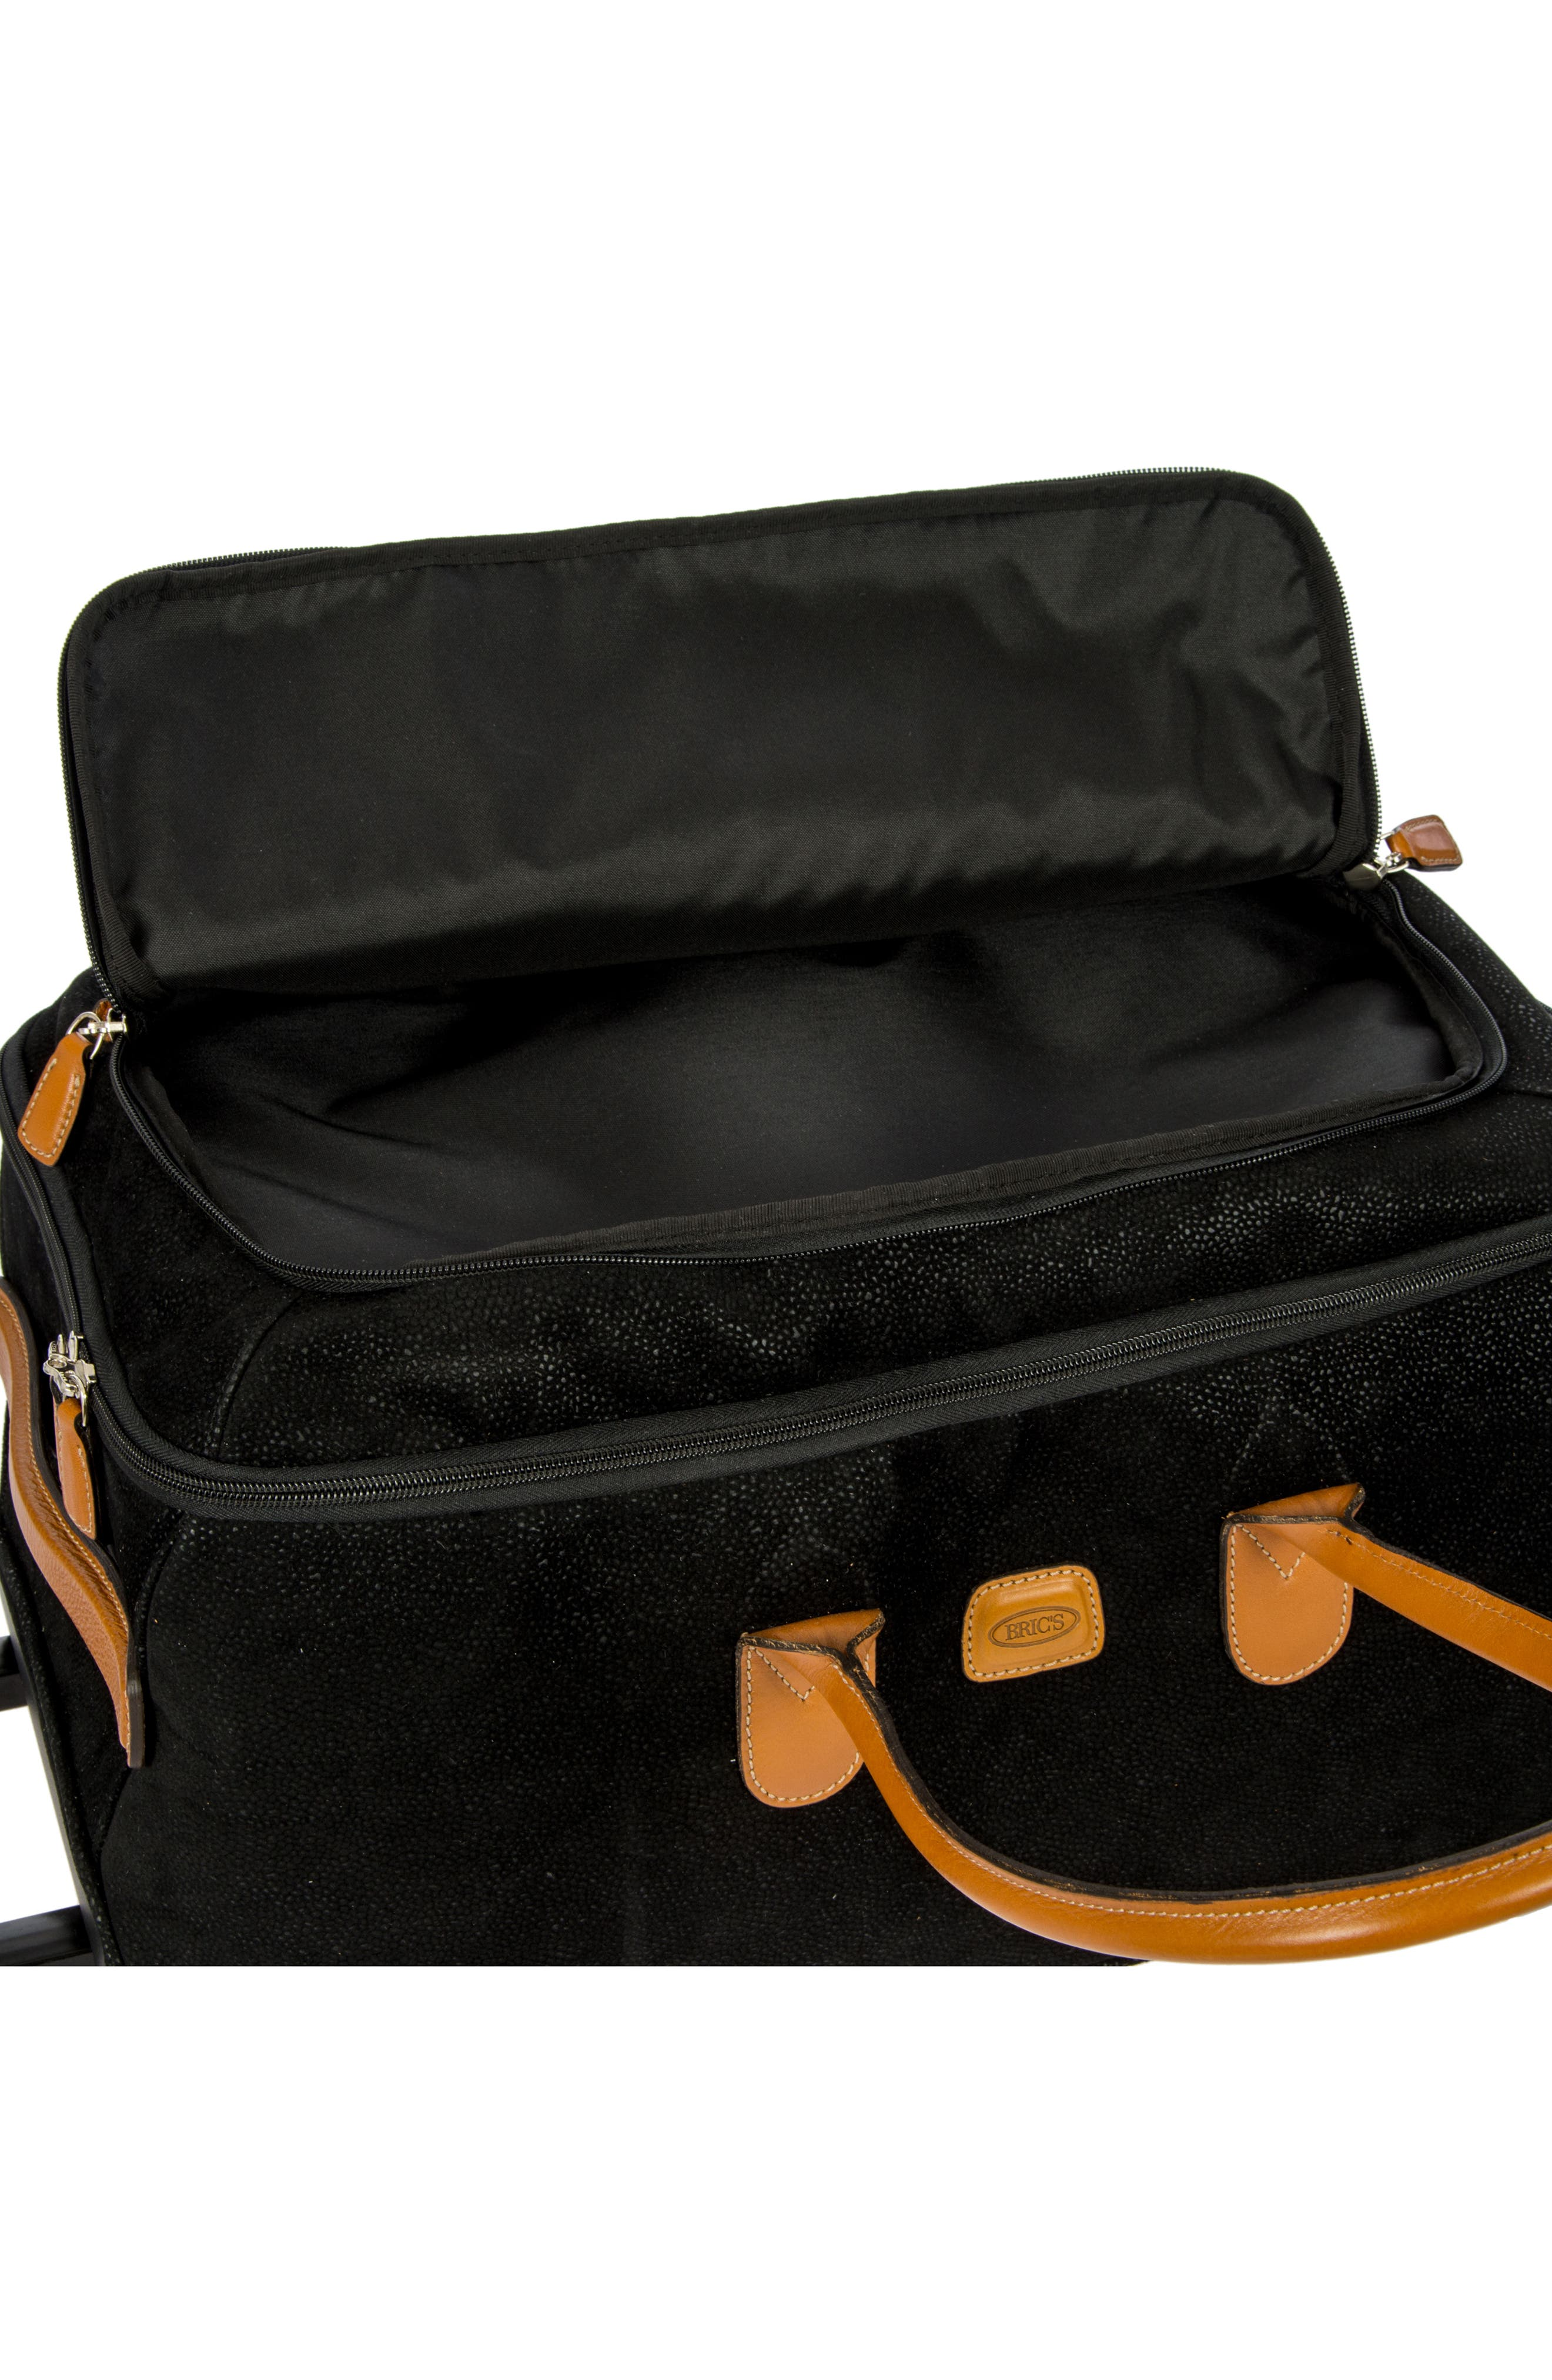 Life Collection 21-Inch Rolling Duffel Bag,                             Alternate thumbnail 5, color,                             Black